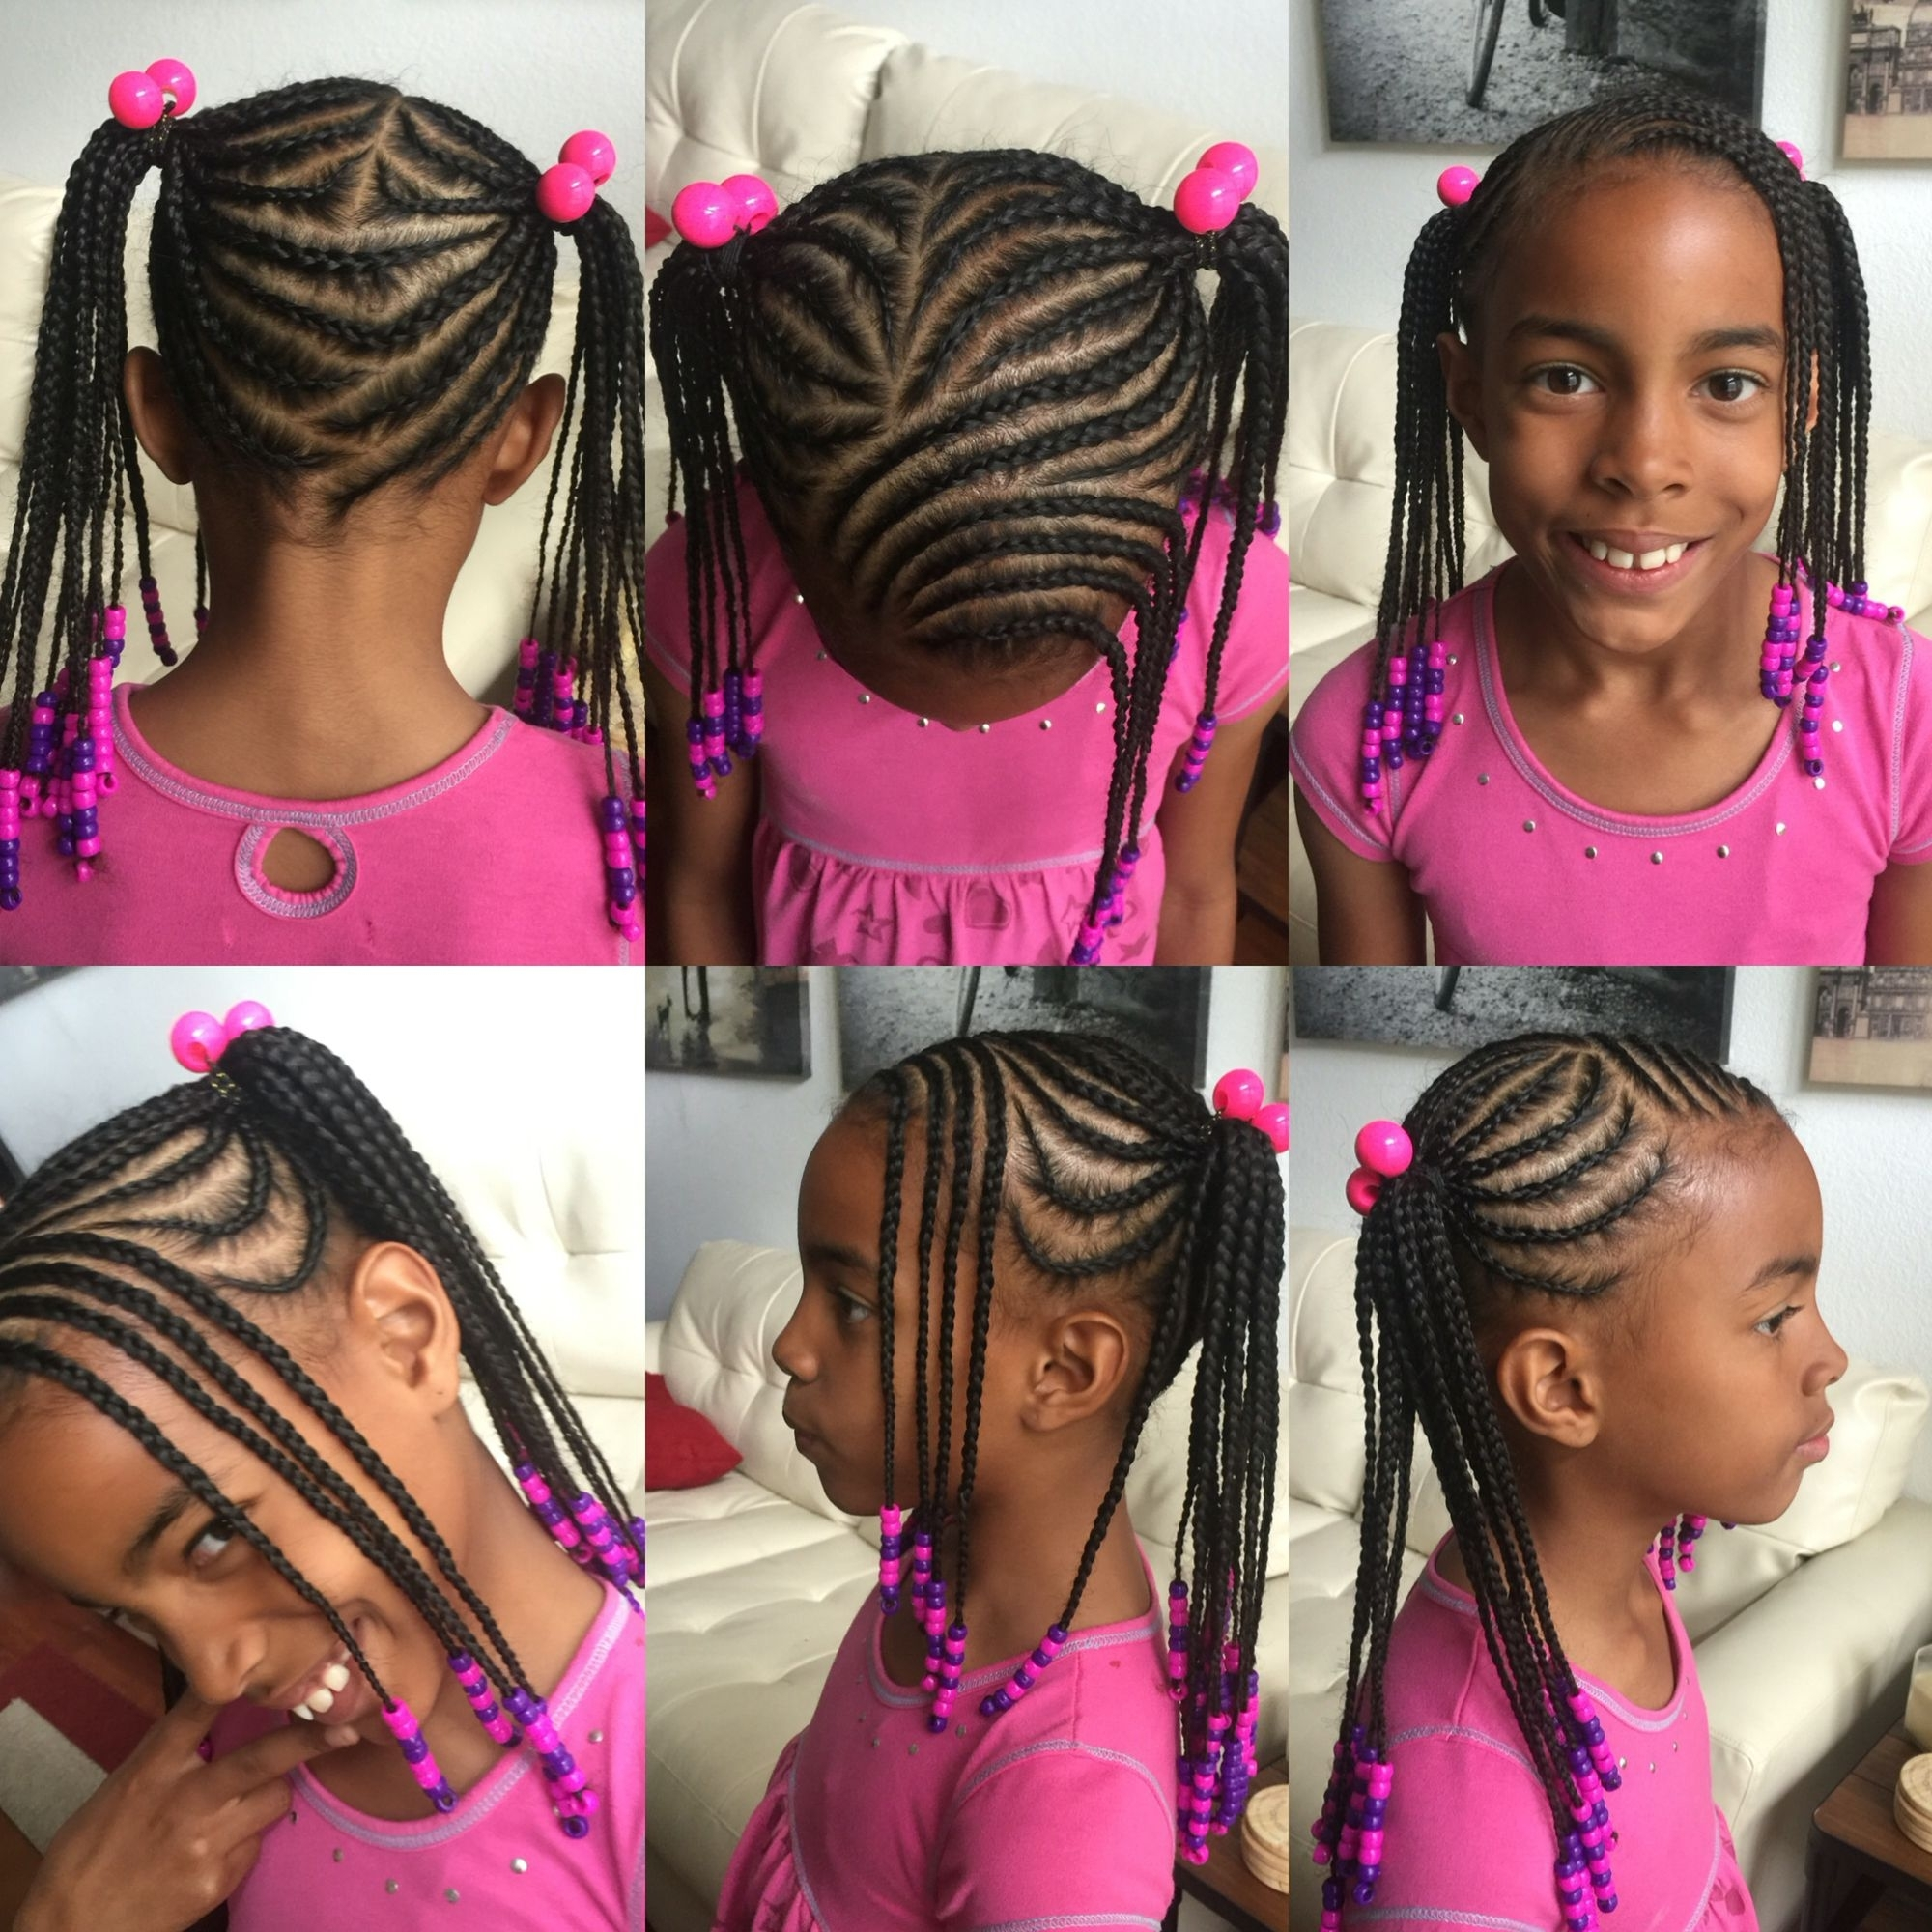 Kids Braided Hairstyle (View 8 of 20)